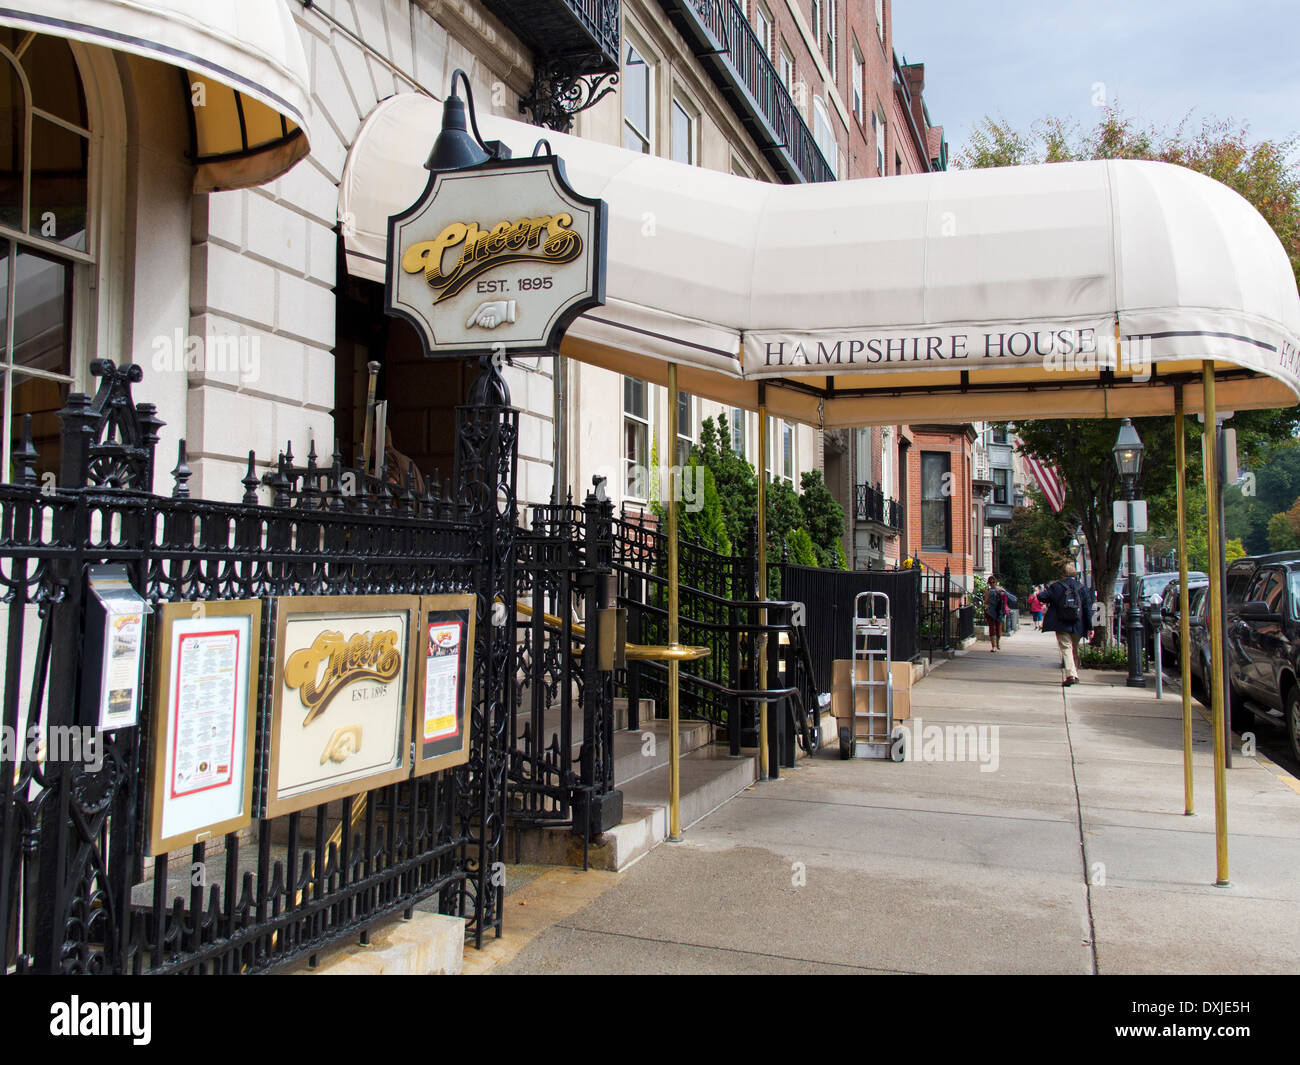 Exterior of the famous 'Cheers' bar in Boston Stock Photo